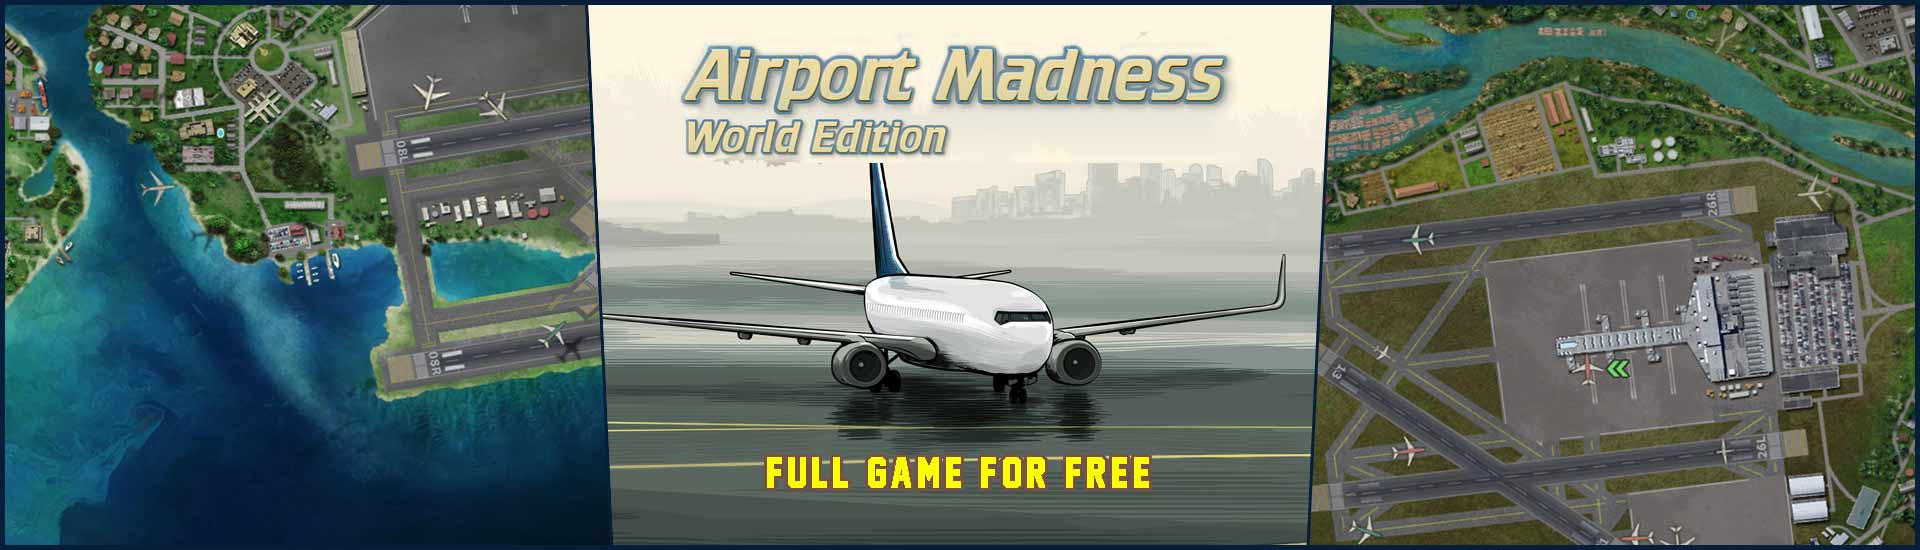 Airport Madness World Edition (Free PC Game)